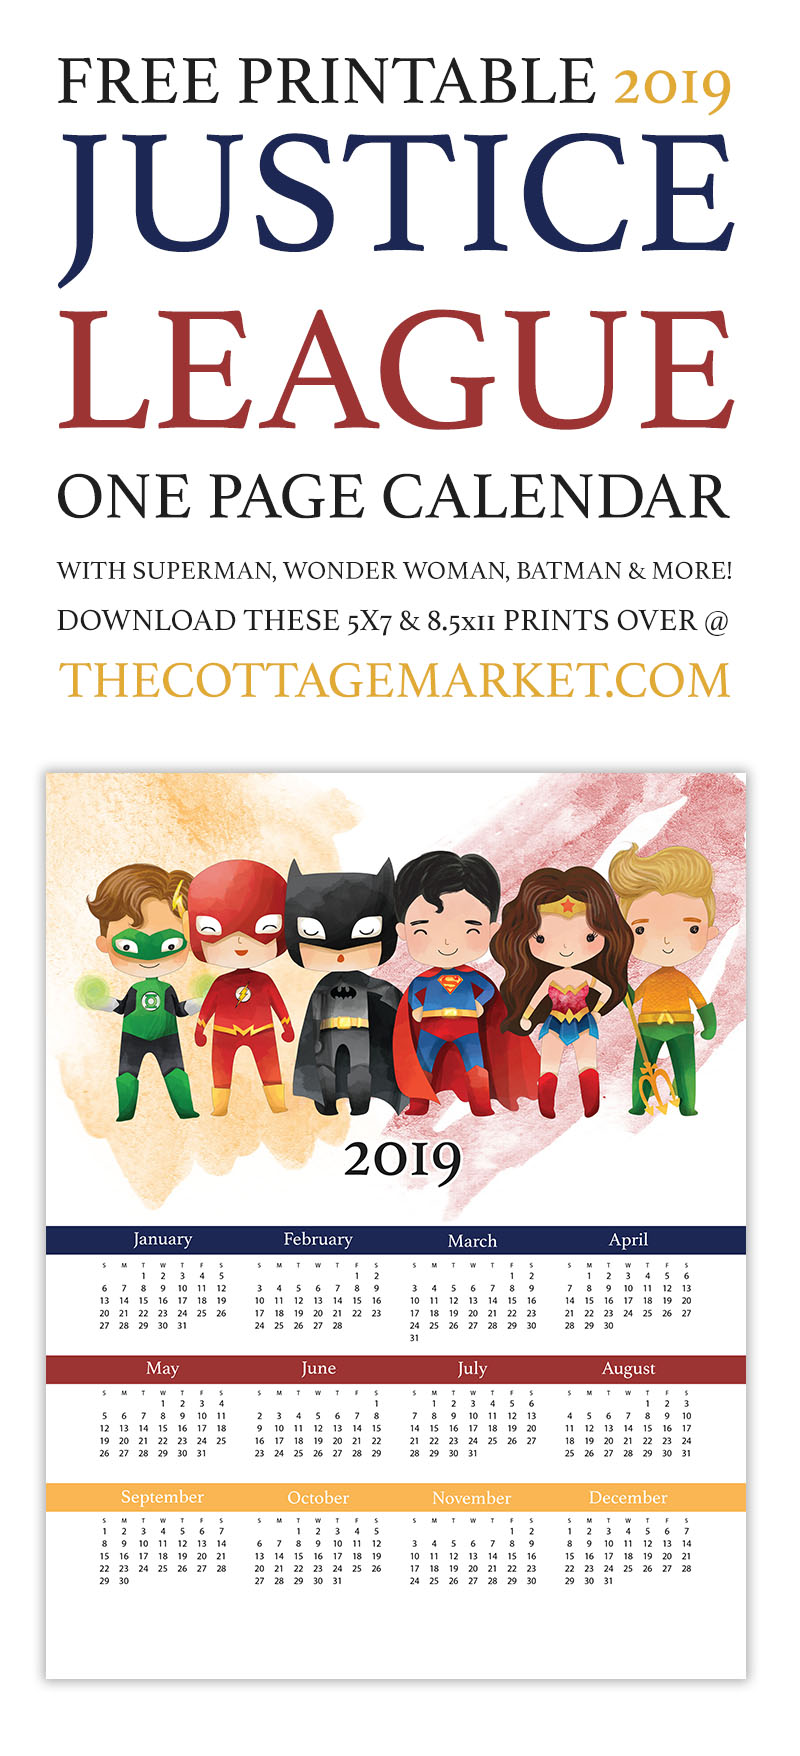 Free Printable 2019 Justice League One Page Calendar with Superman,Wonderwoman, Batman, Aquaman, Flash and Green Lantern is waiting to be hung in your space